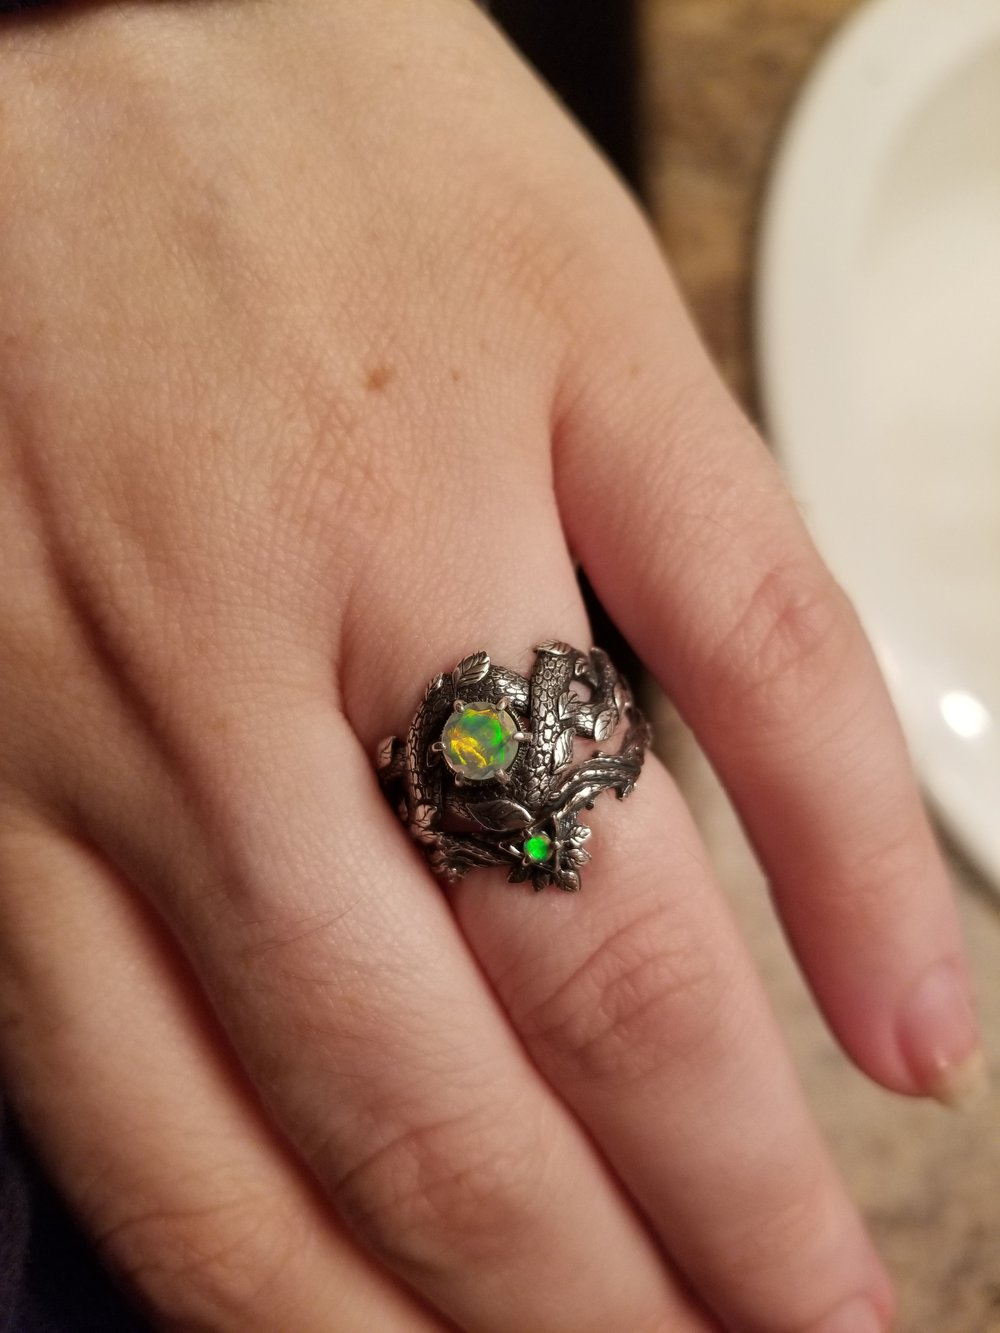 THE FANCIEST OF ALL WEDDING RINGS!